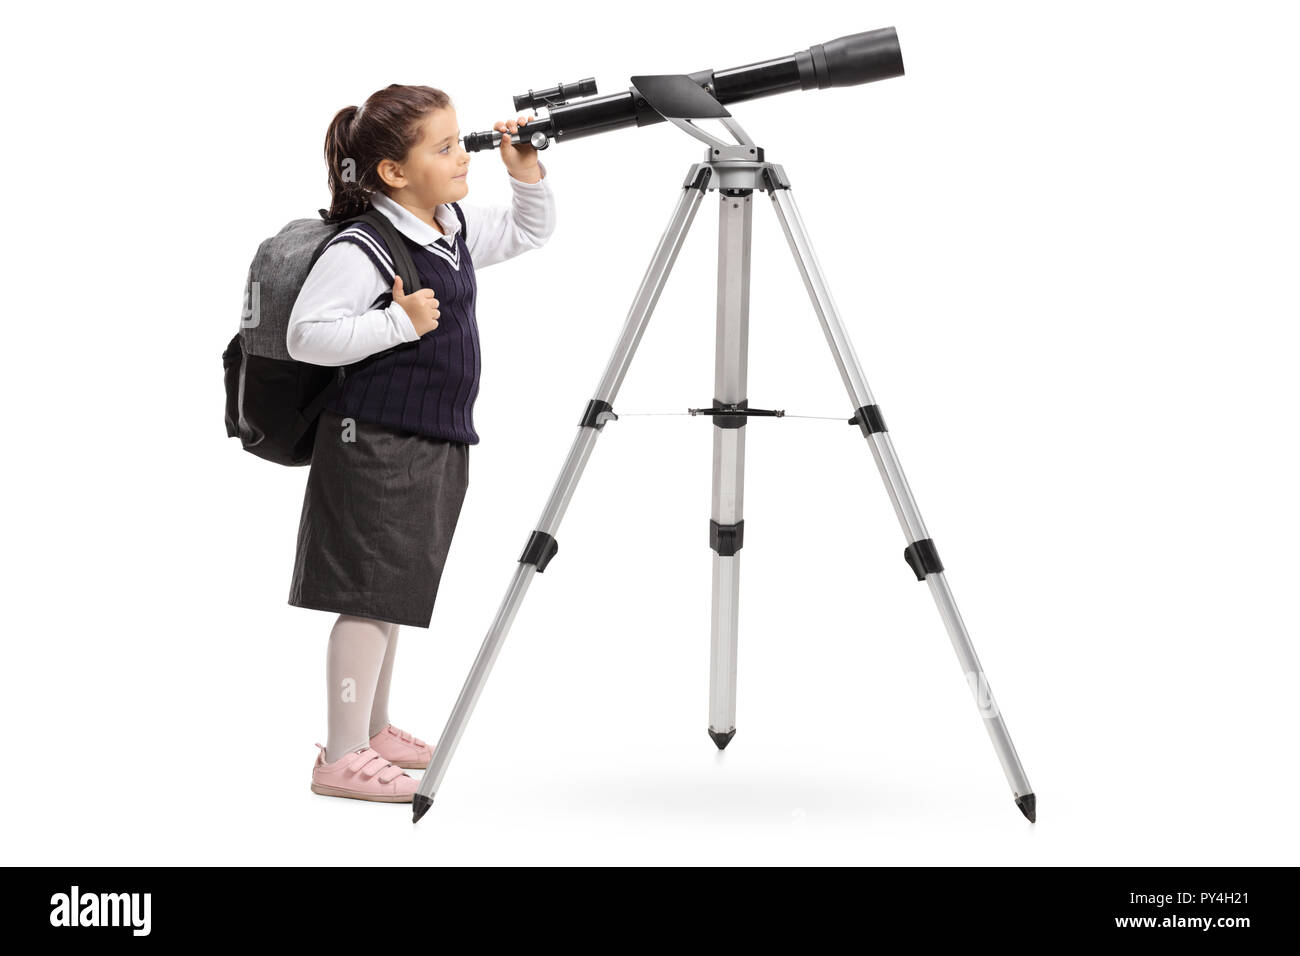 Full length shot of a schoolgirl in a uniform looking through a telescope isolated on white background - Stock Image